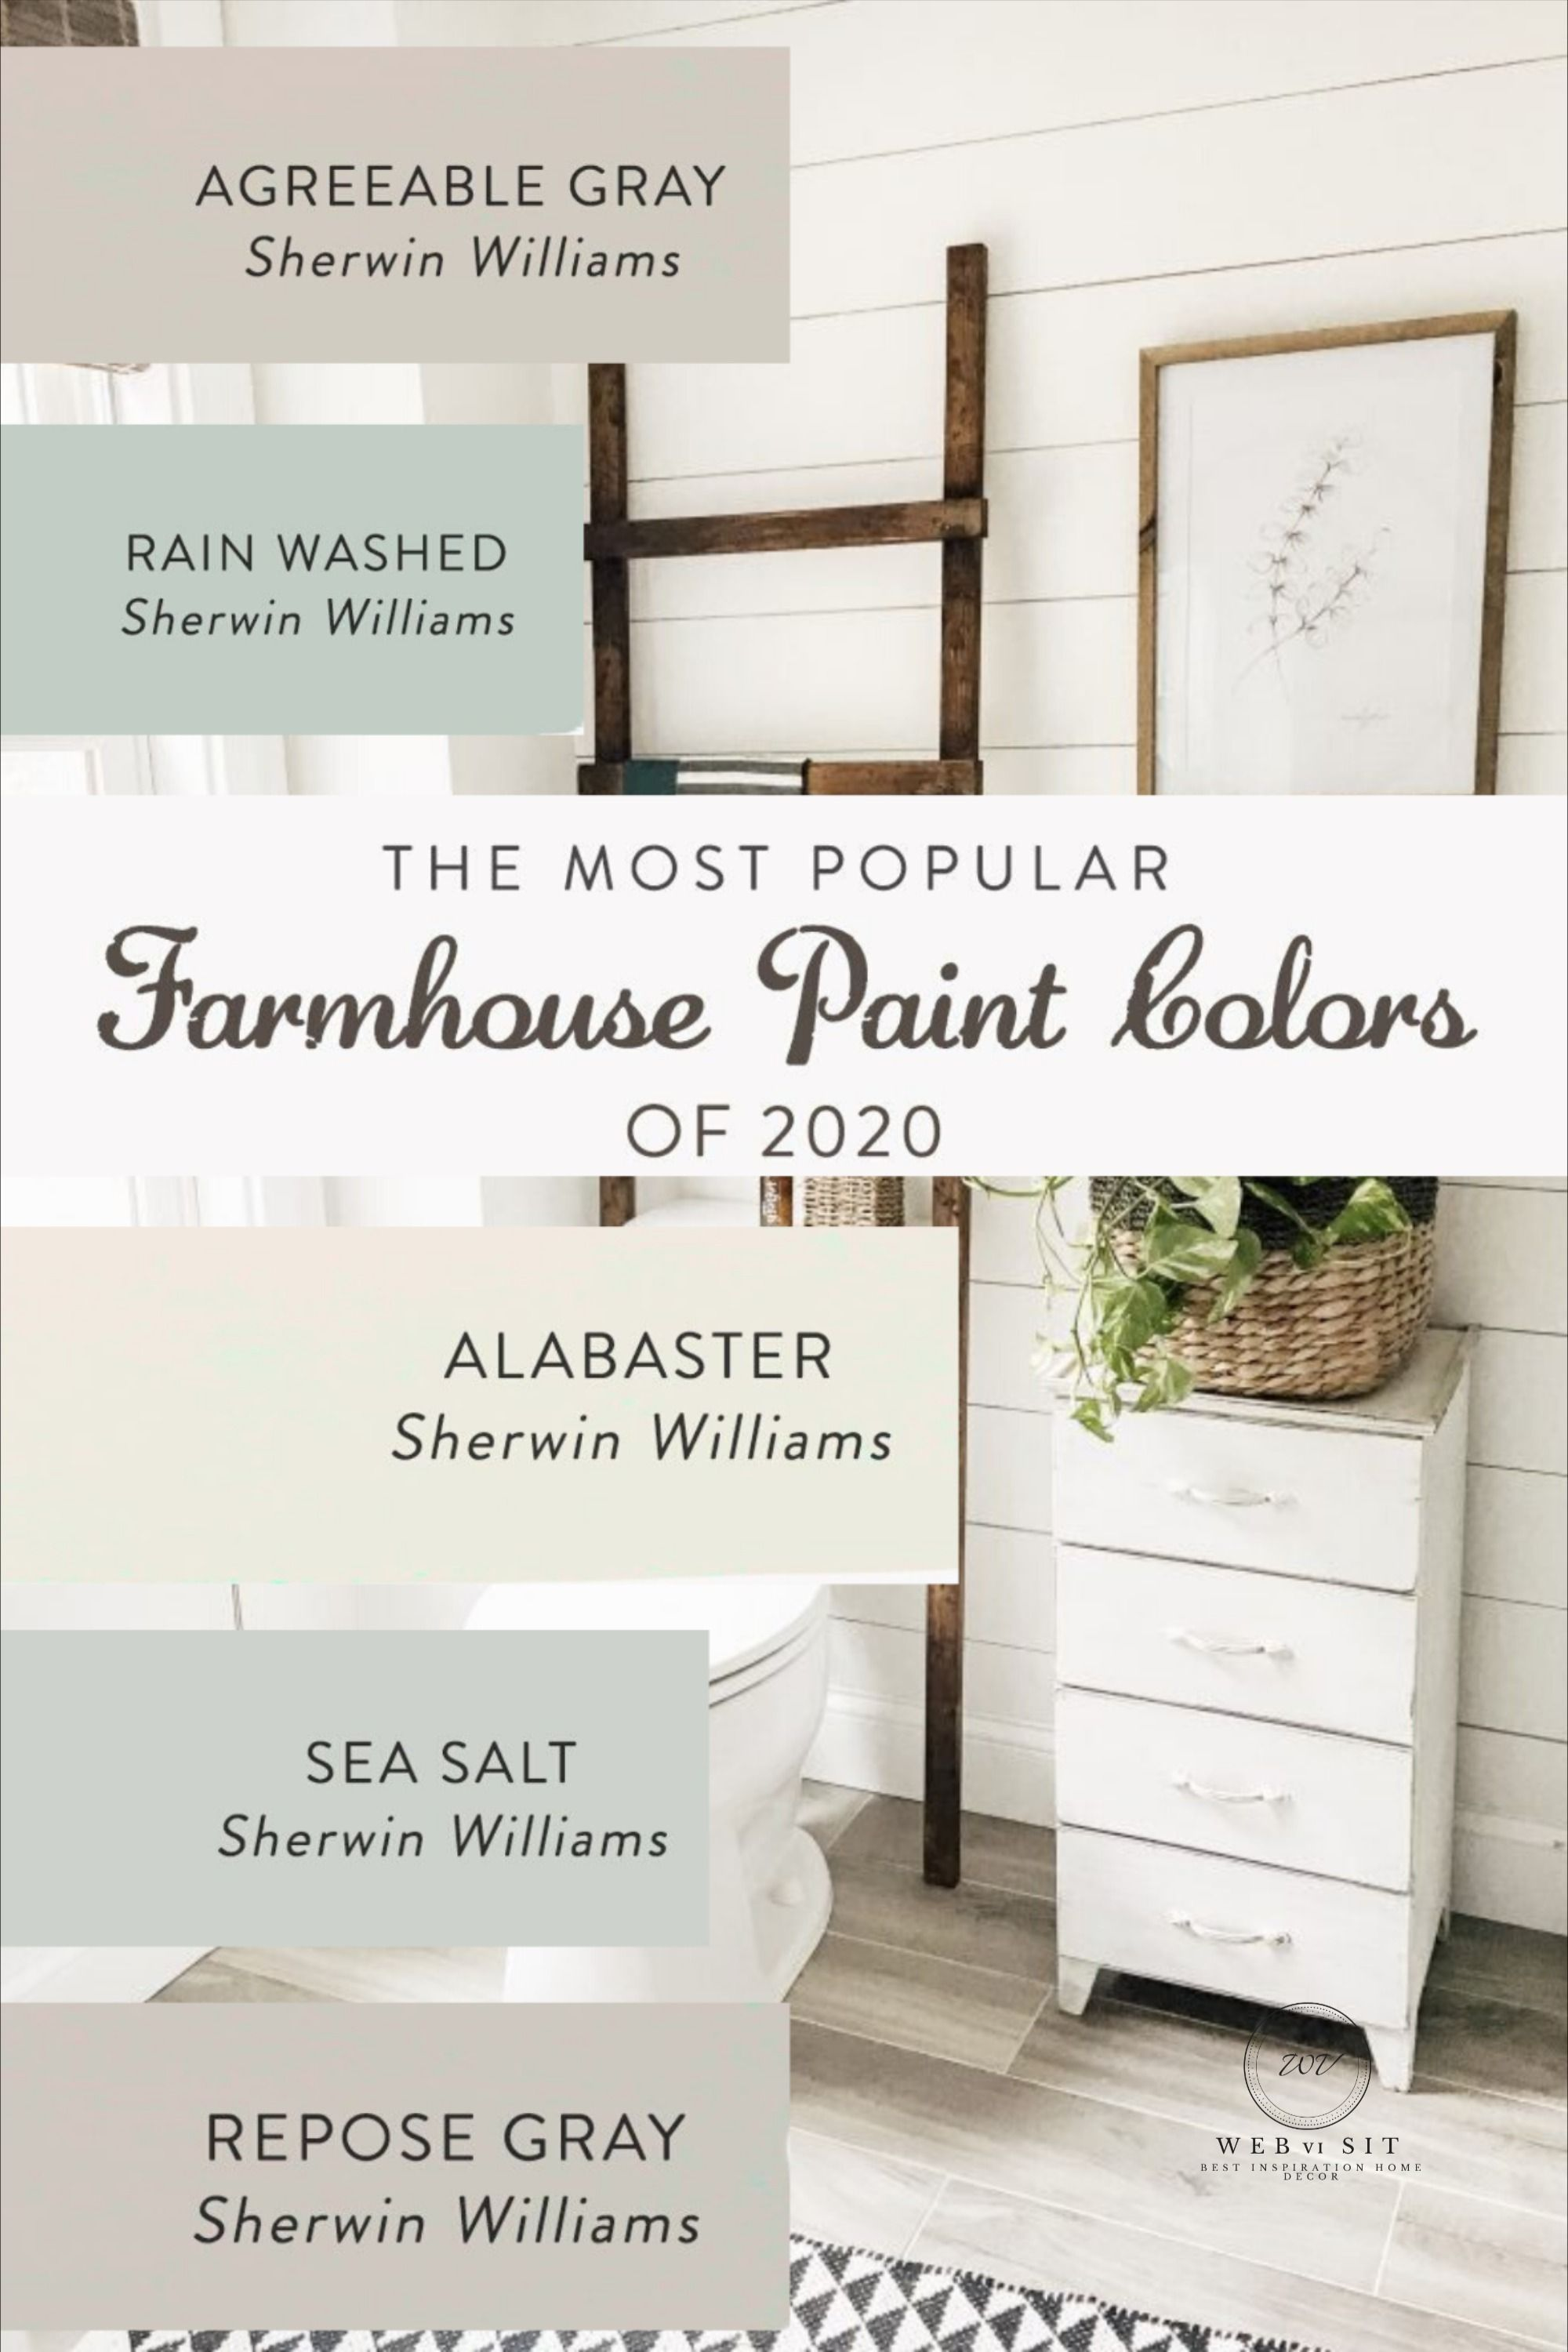 The Most Popular Farmhouse Paint Colors